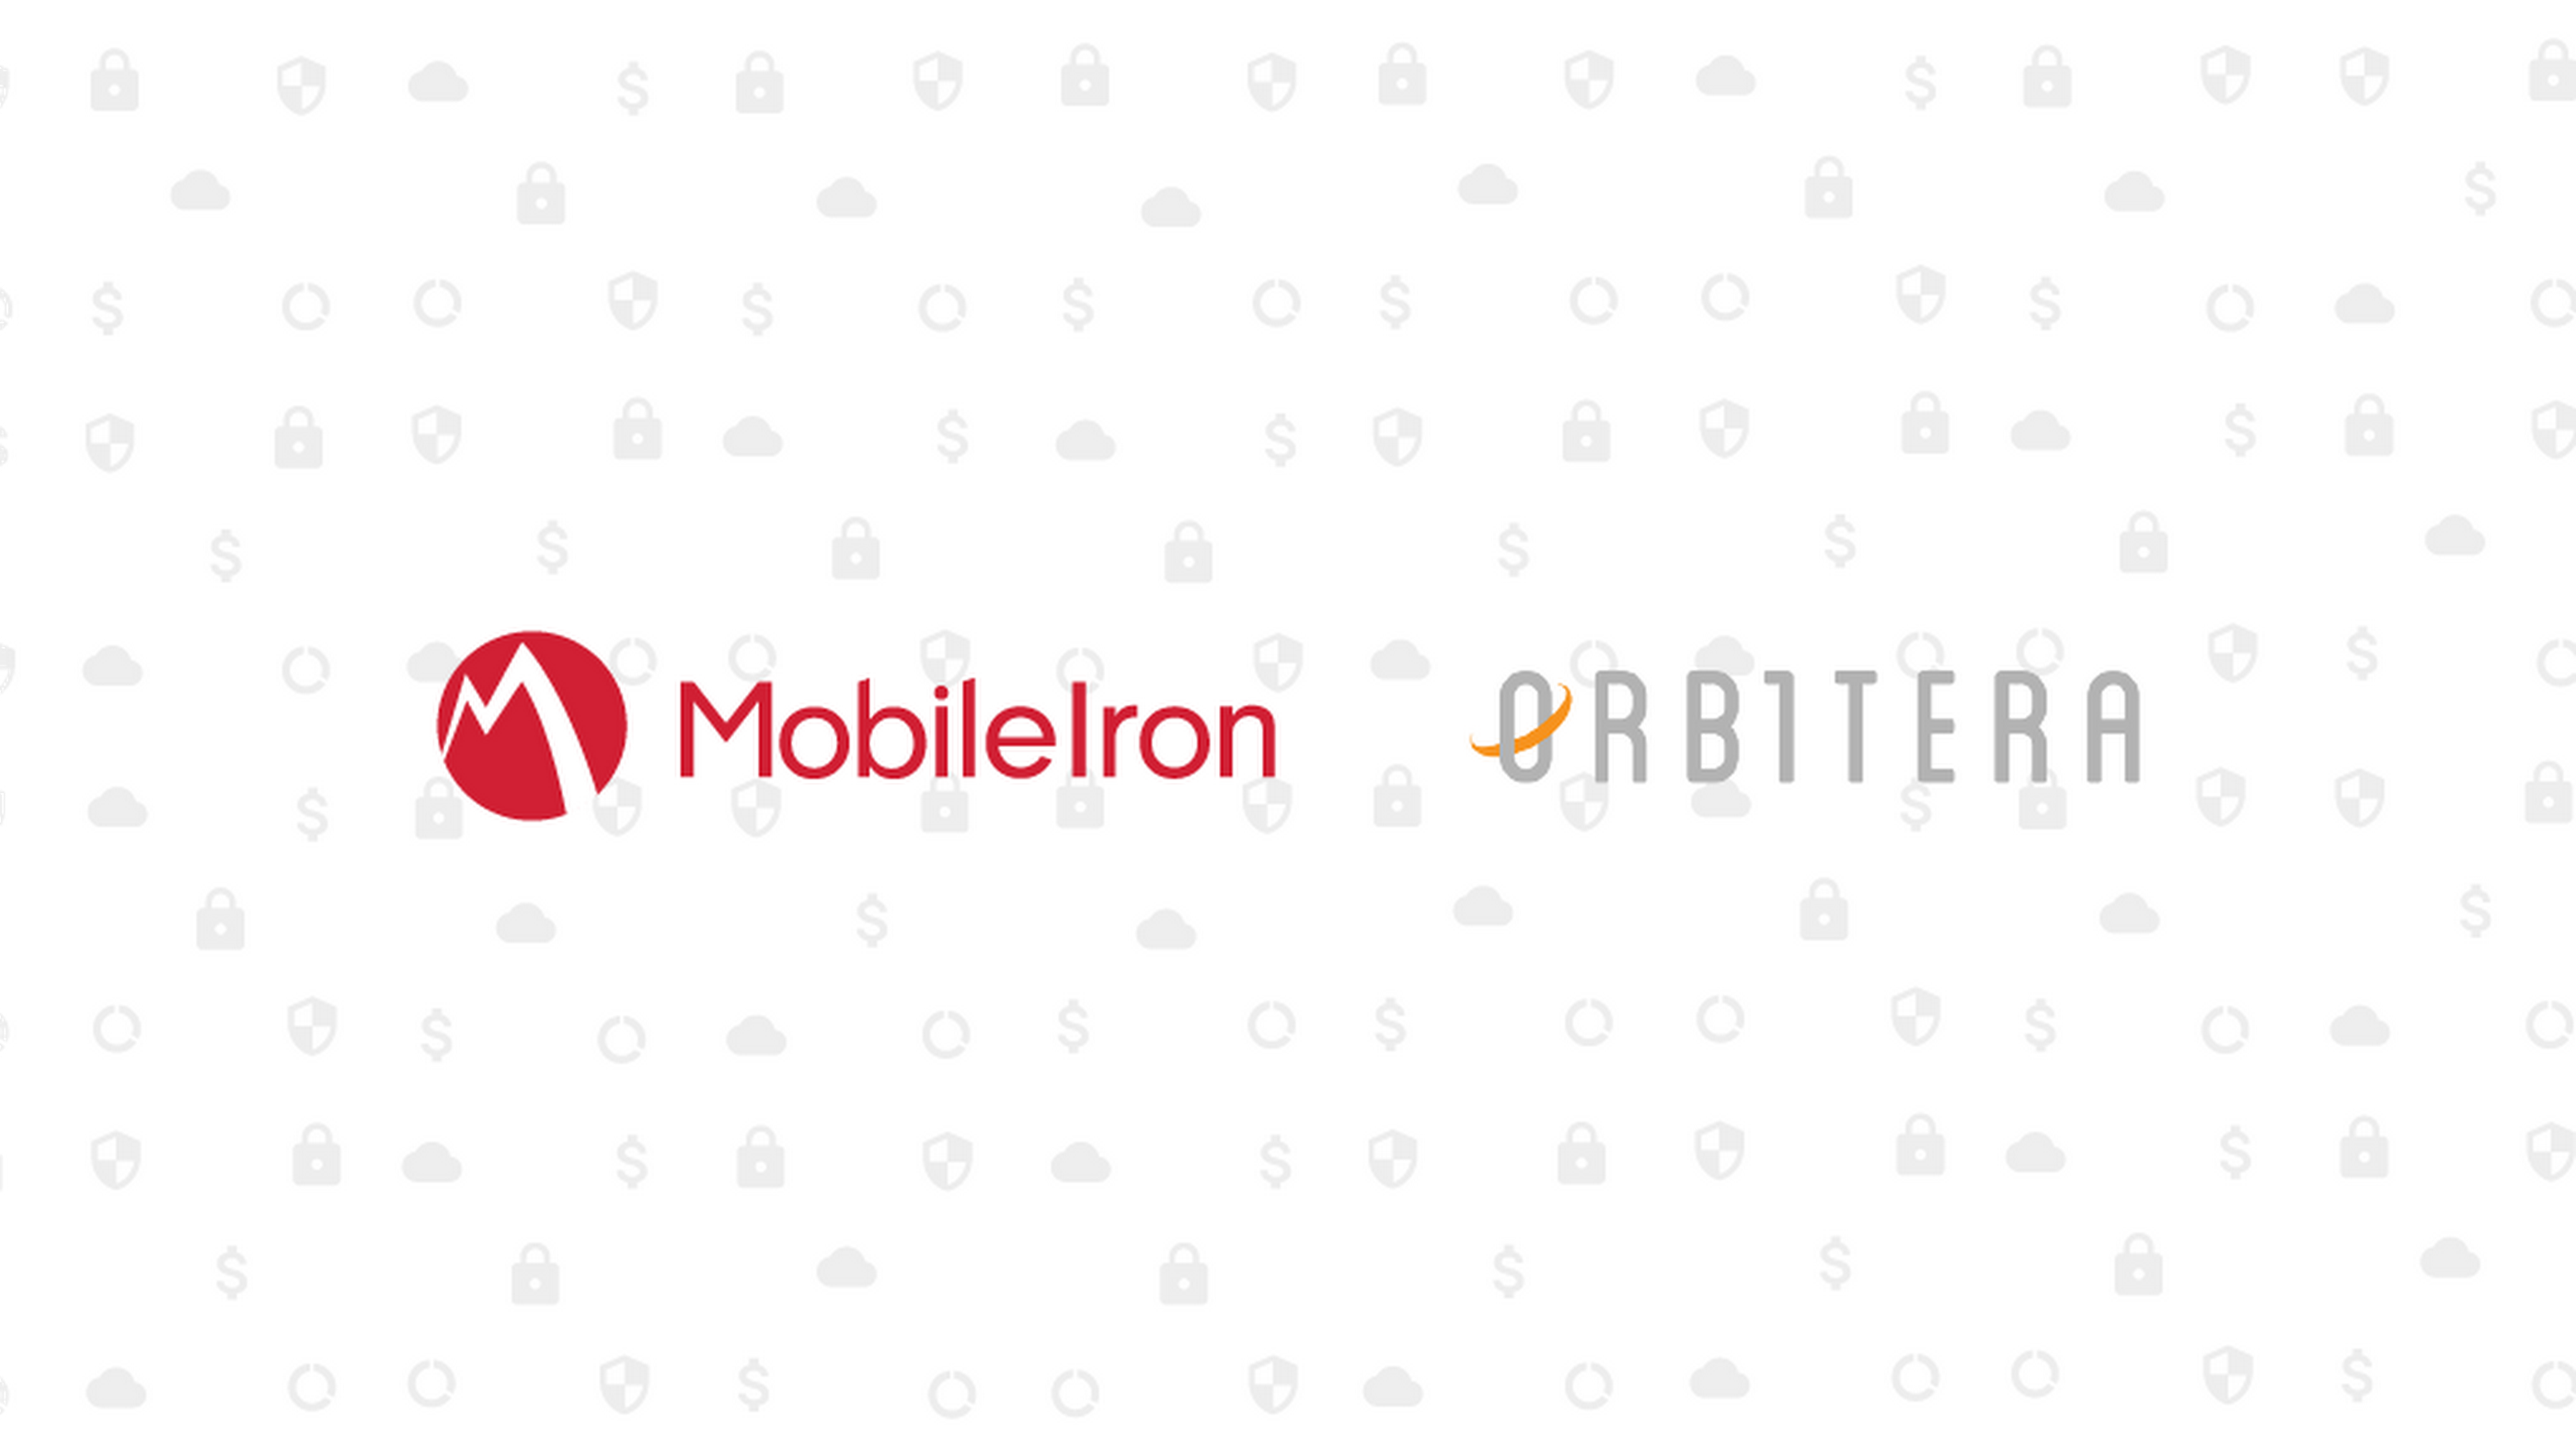 Orbitera MobileIron partnership hero image